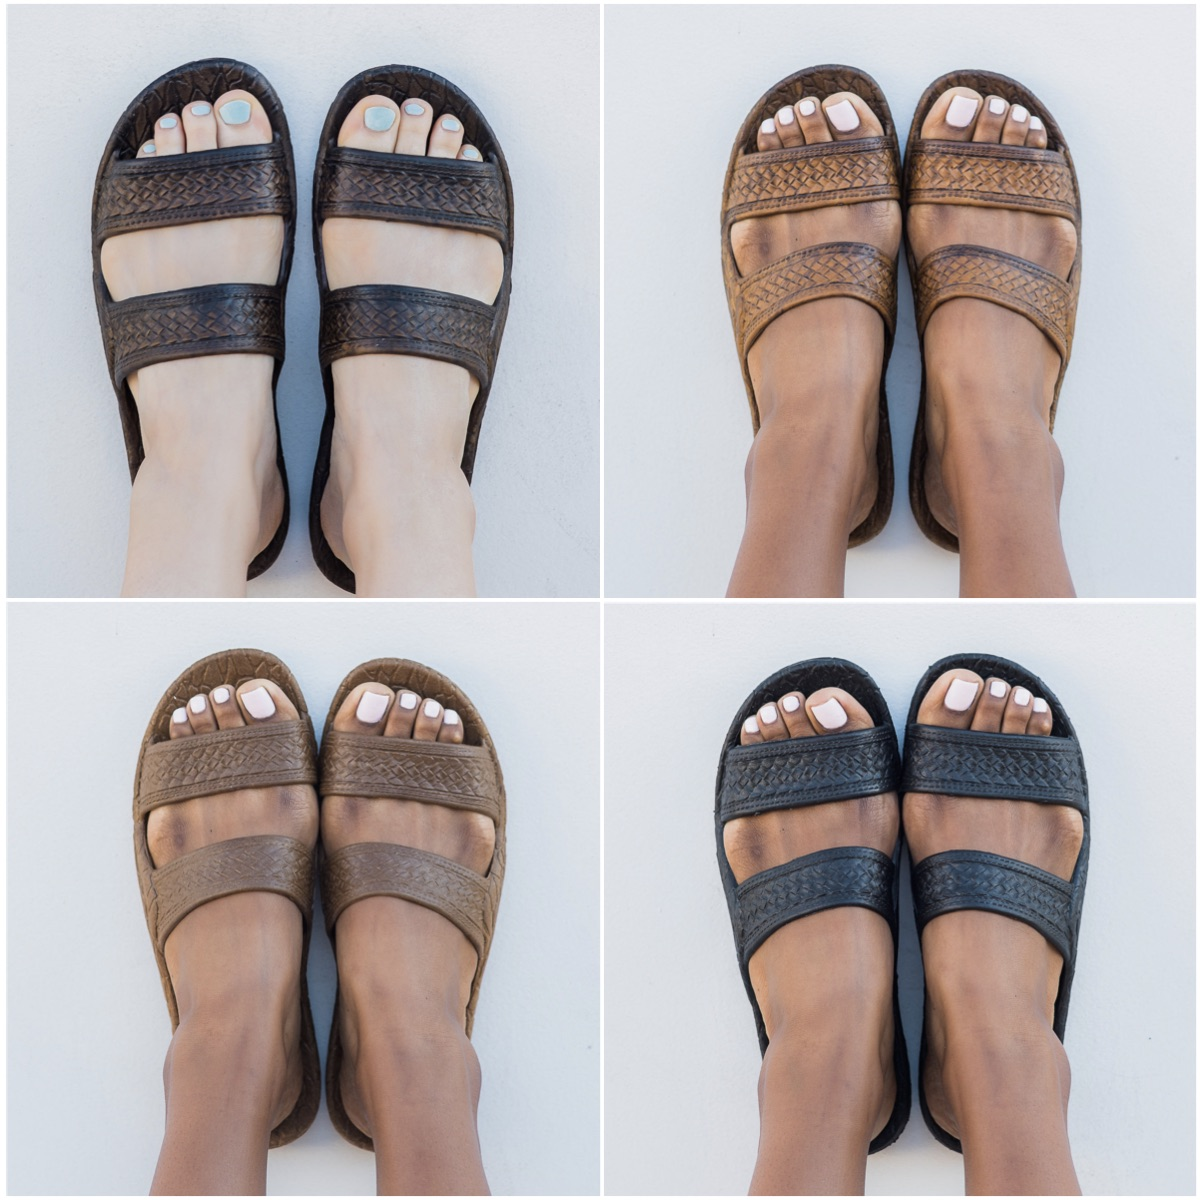 The Classic Jandal ® in Dark Brown, Light Brown, Brown and Black.